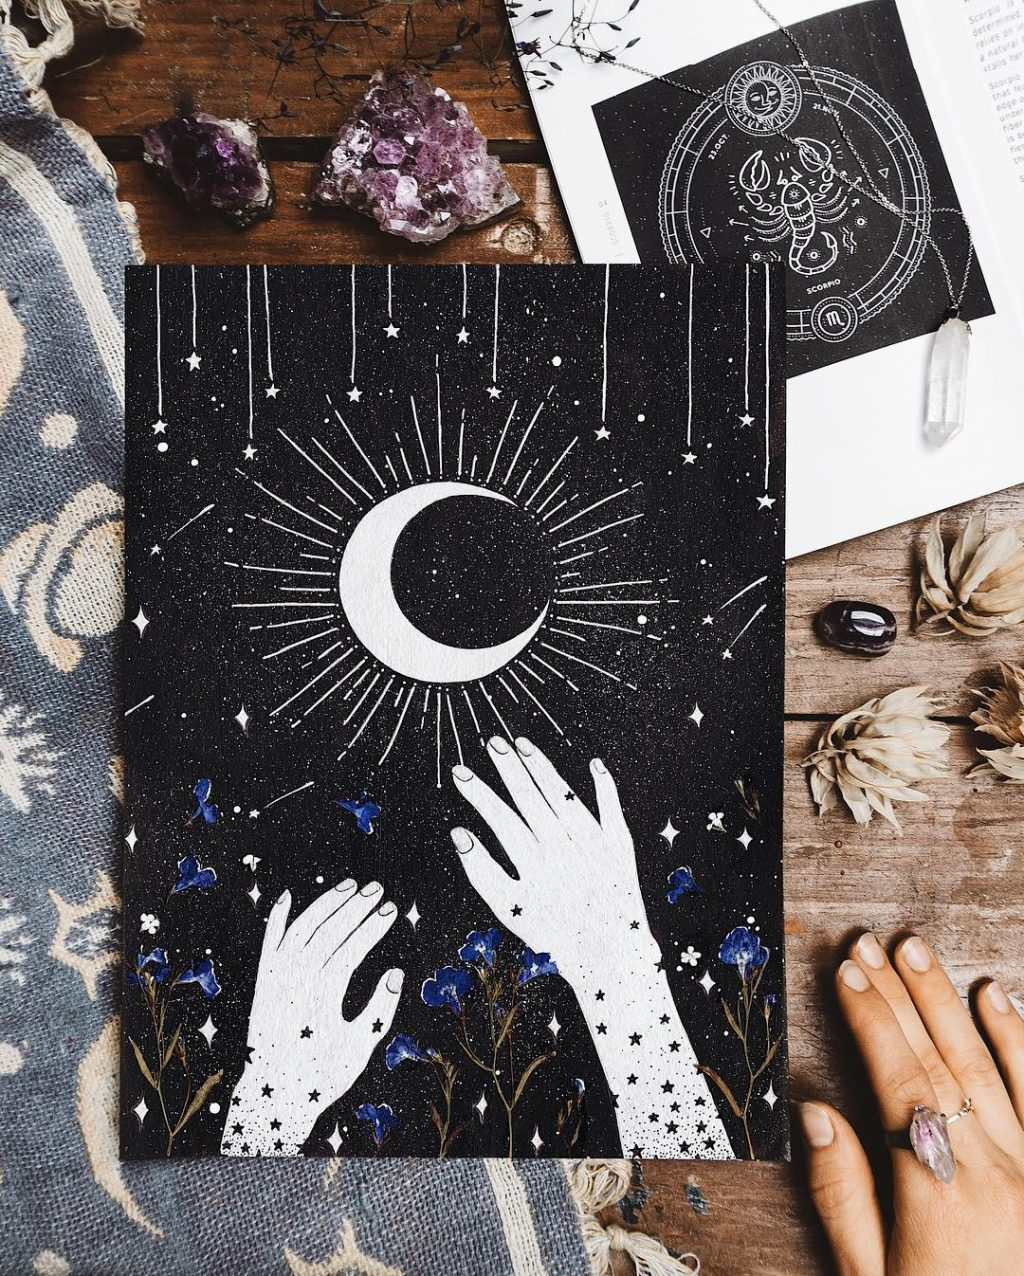 A New Moon Ritual to Help You Realize Your Goals